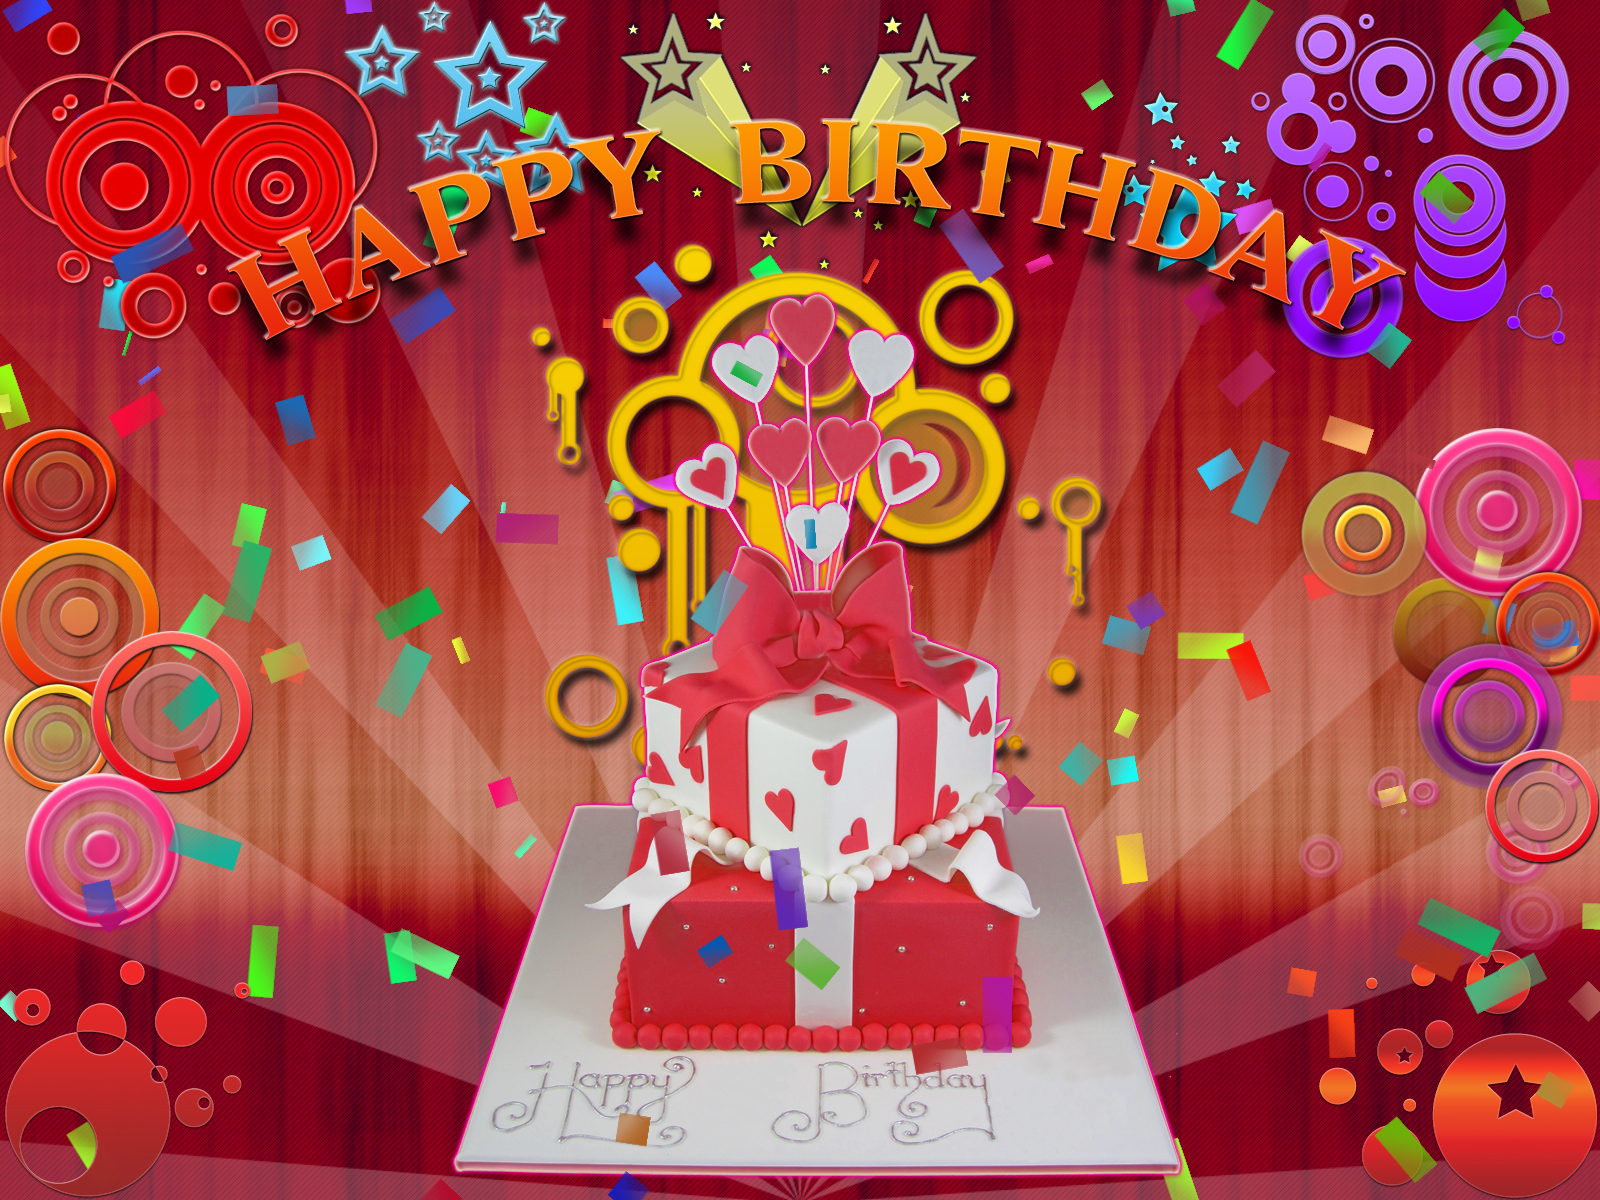 Description Happy Birthday Wallpapers is a hi res Wallpaper for pc 1600x1200